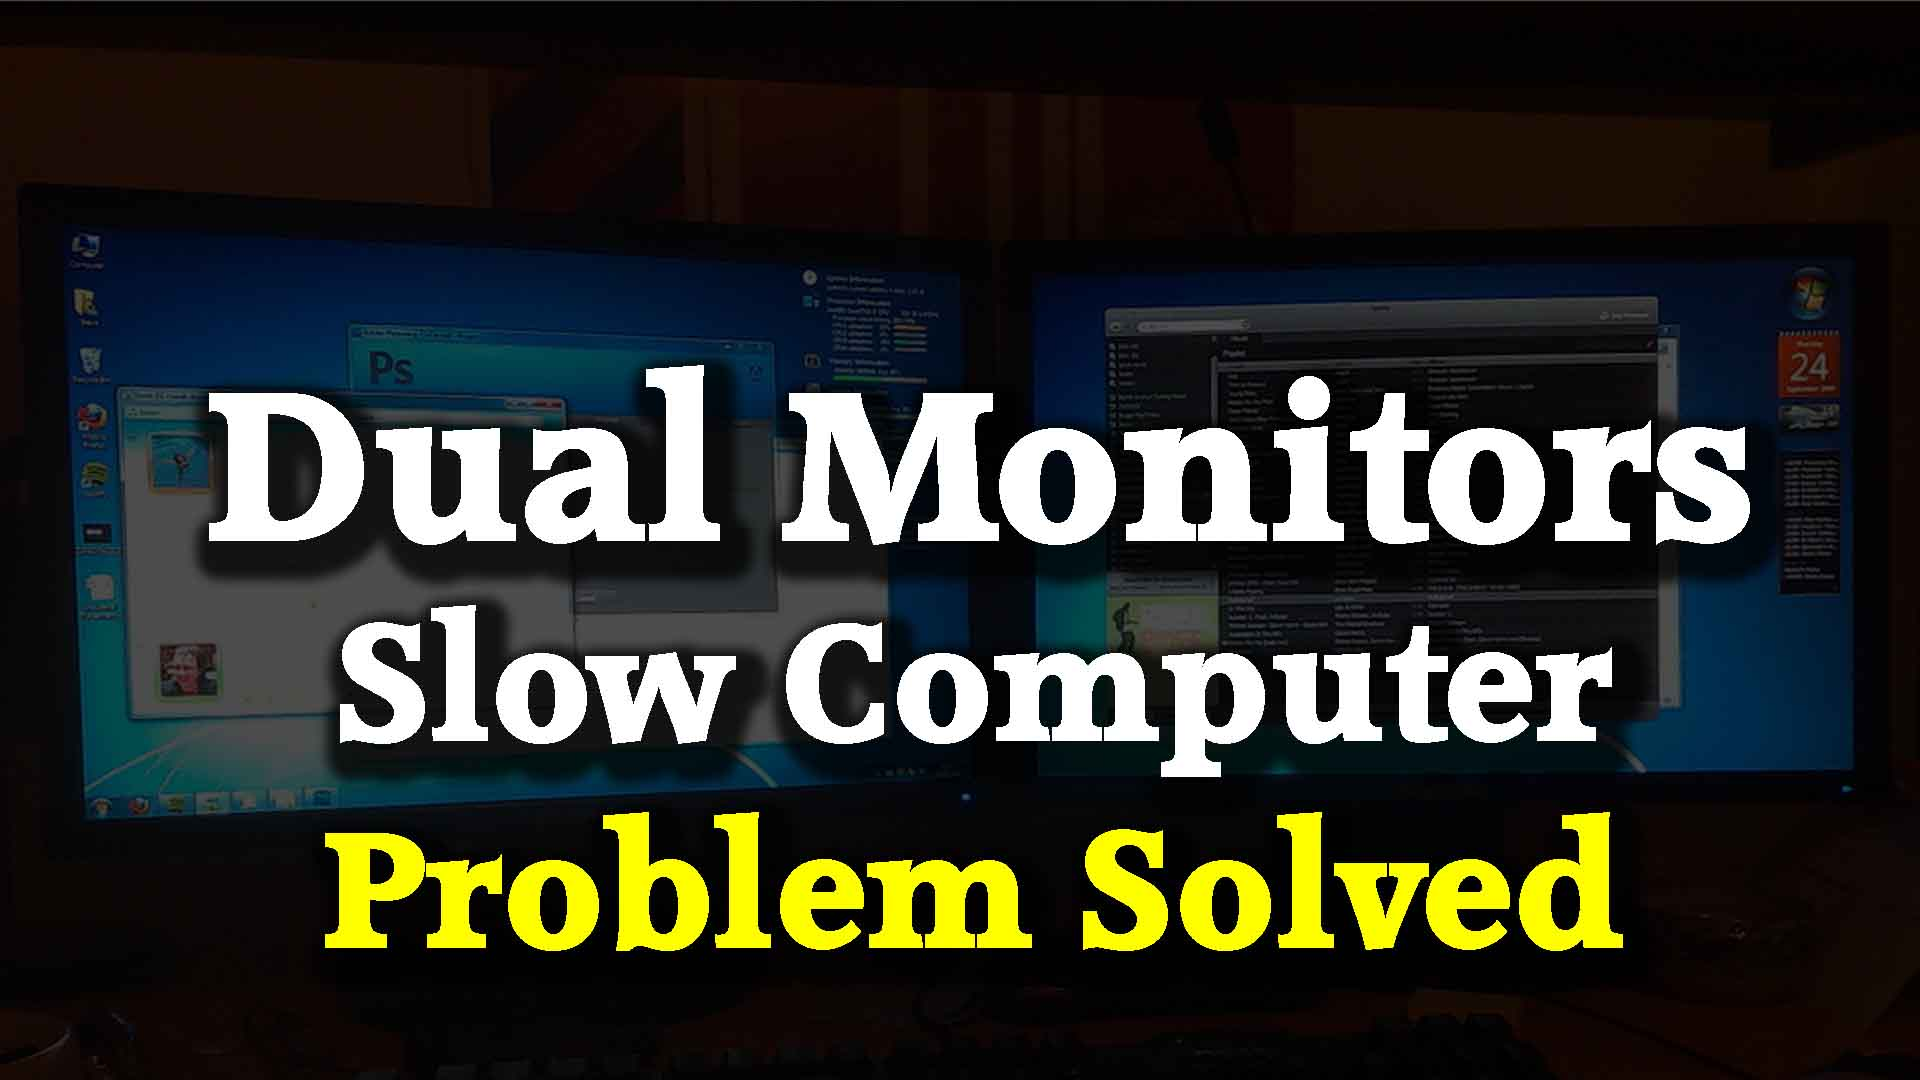 will dual monitors slow down my computer